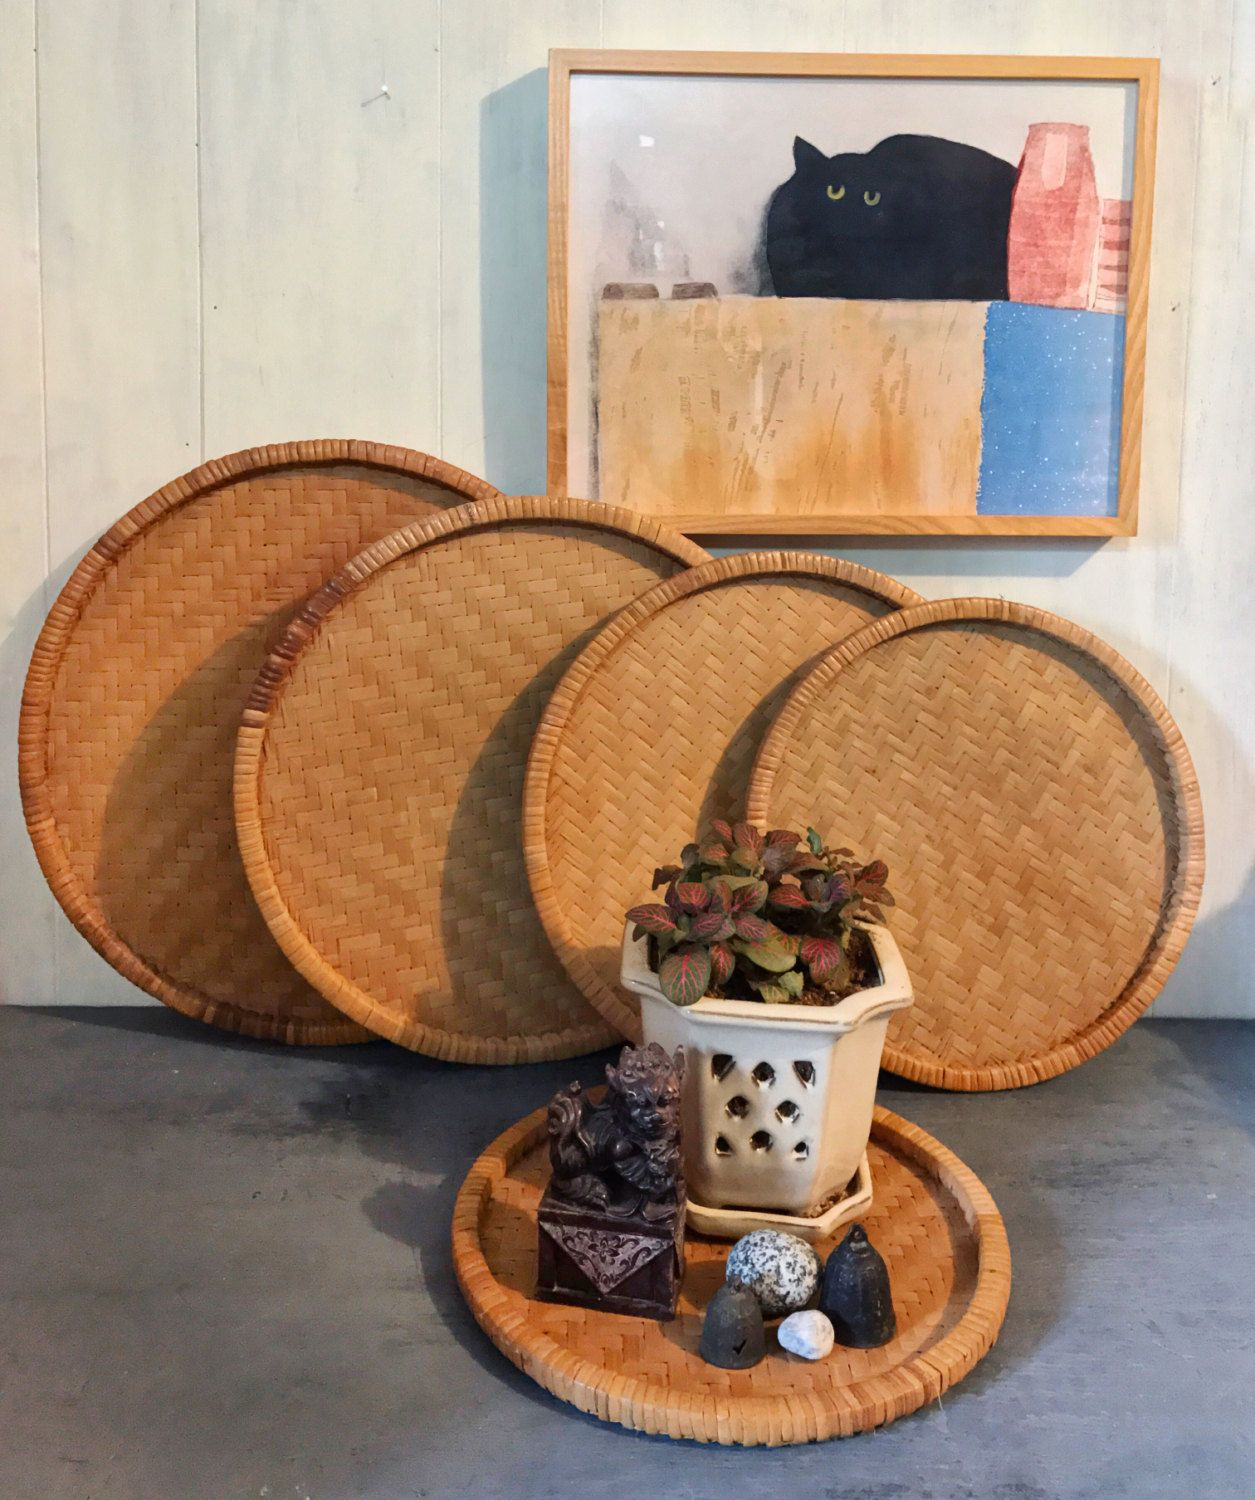 Wall Baskets Decor round bamboo trays - wicker serving trays - flat wall baskets